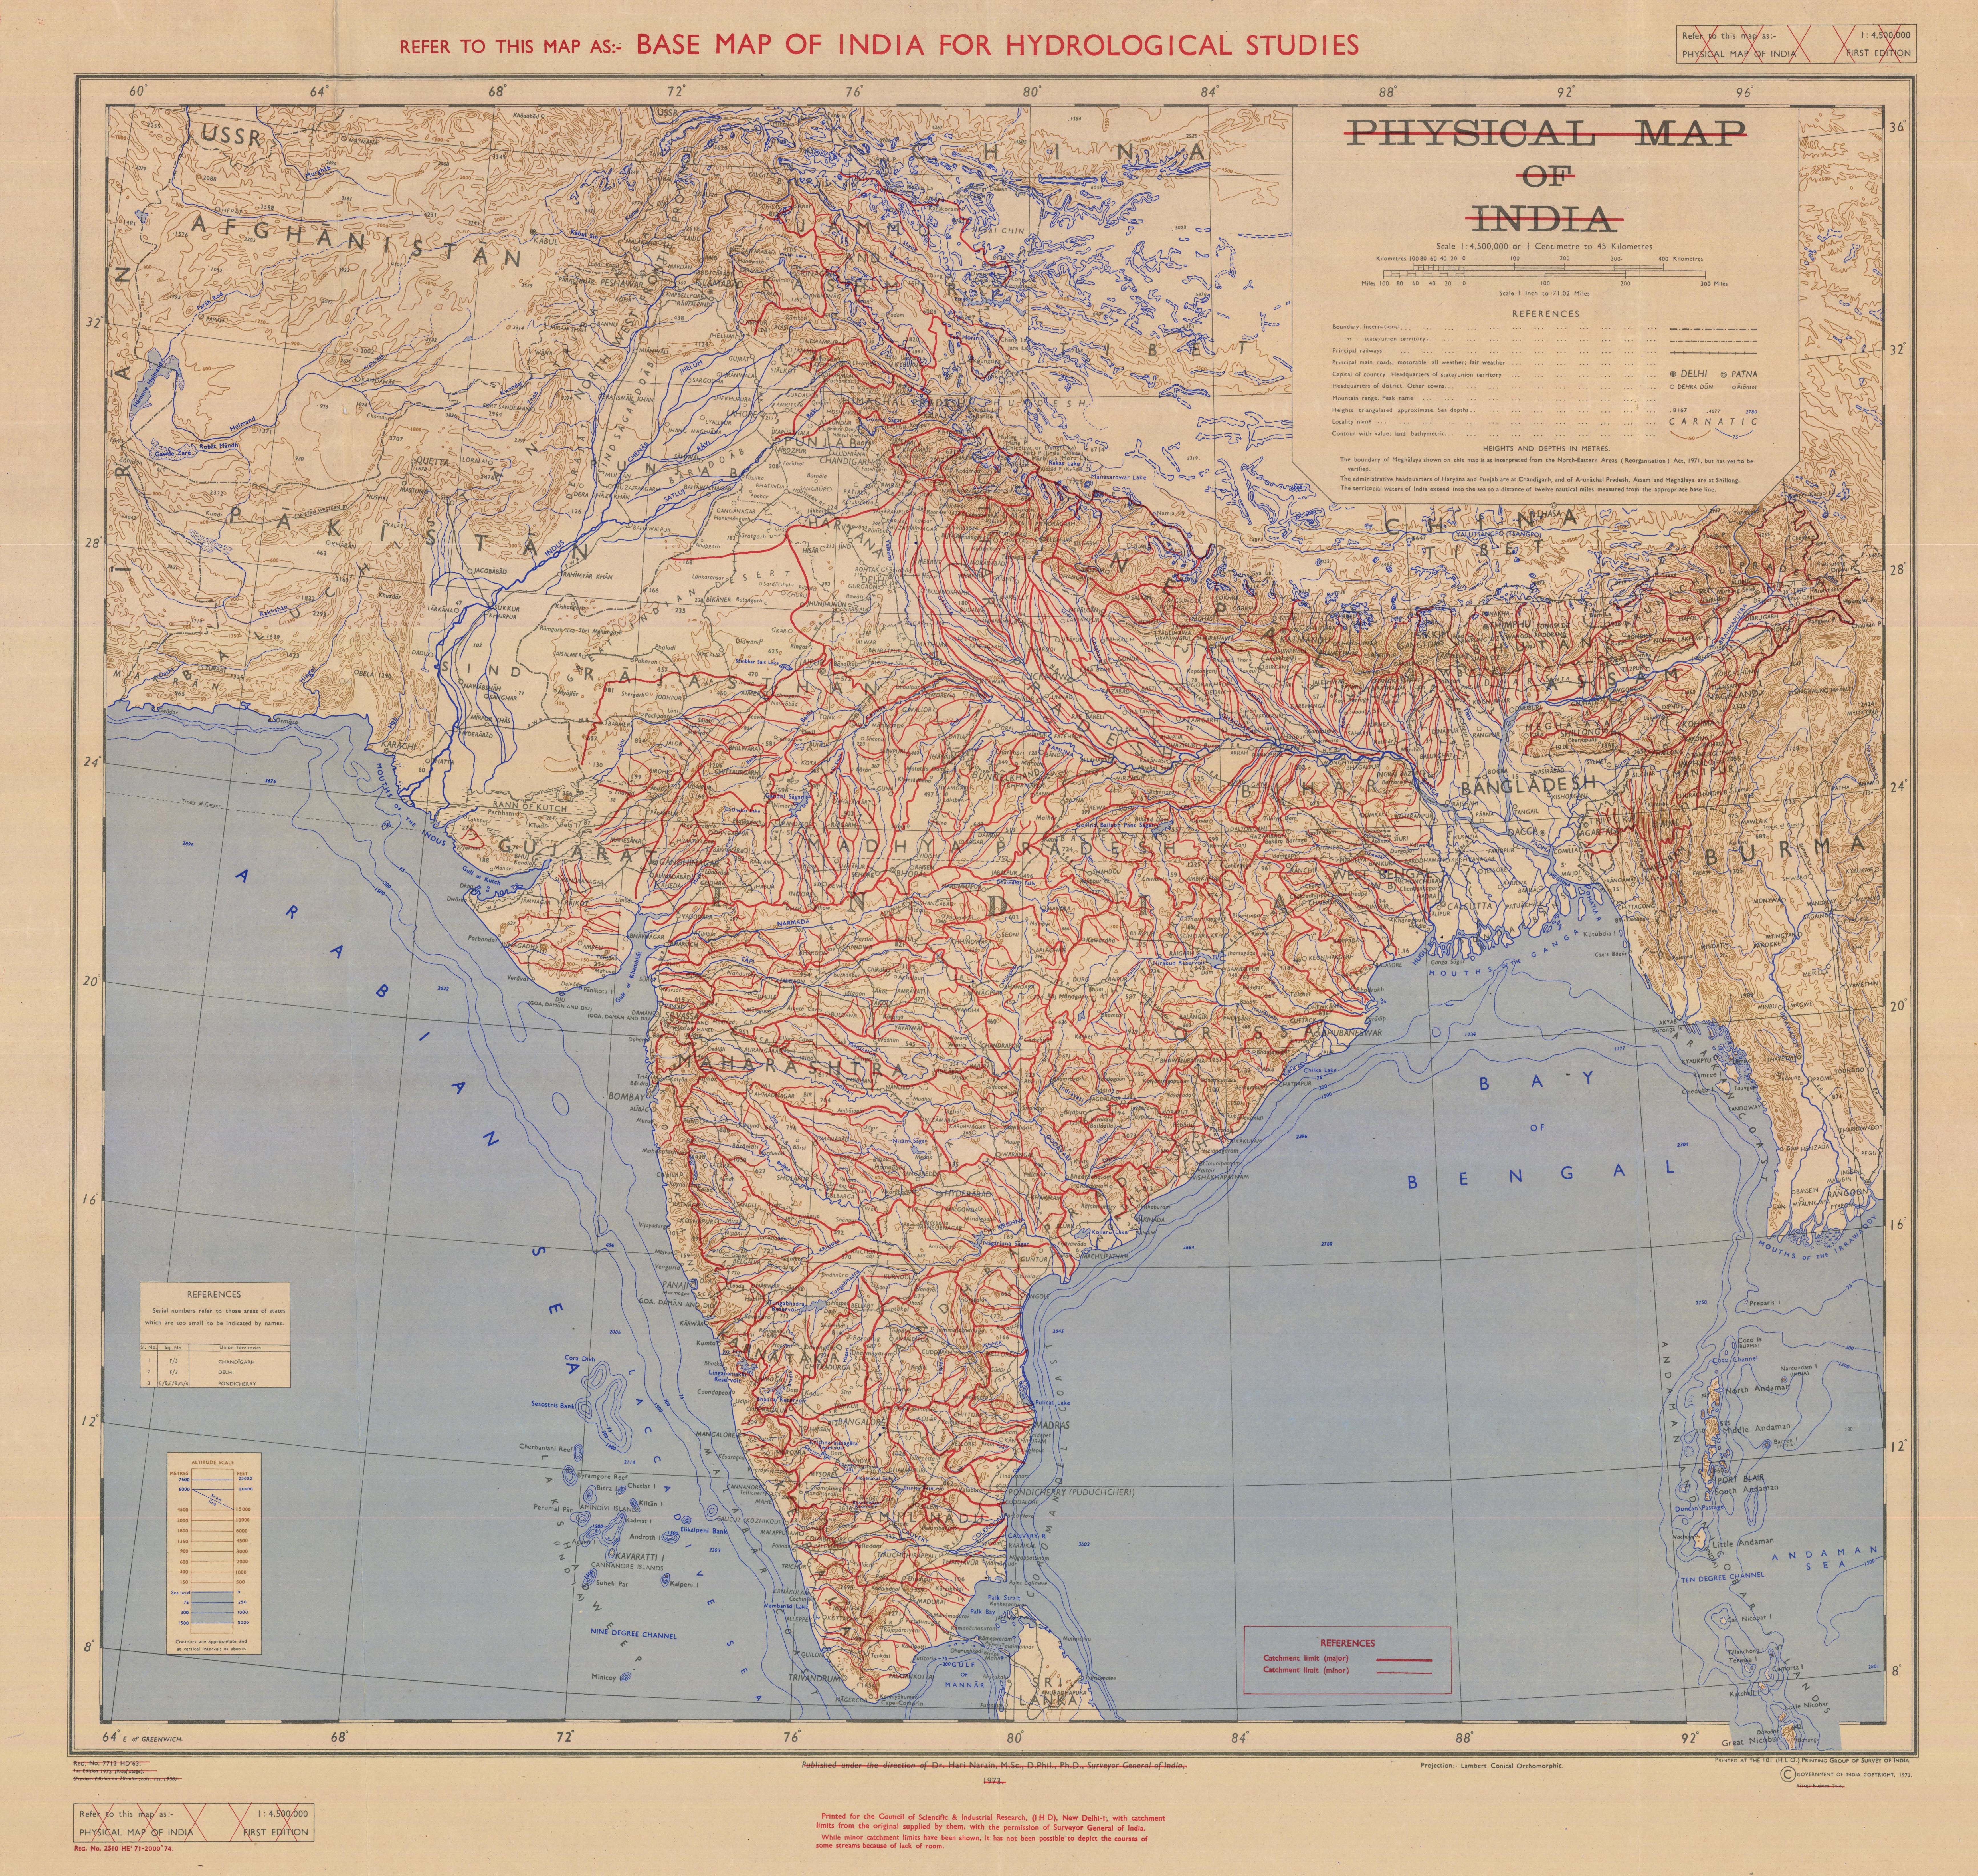 Base map of india for hydrological studies esdac european base map of india for hydrological studies download gumiabroncs